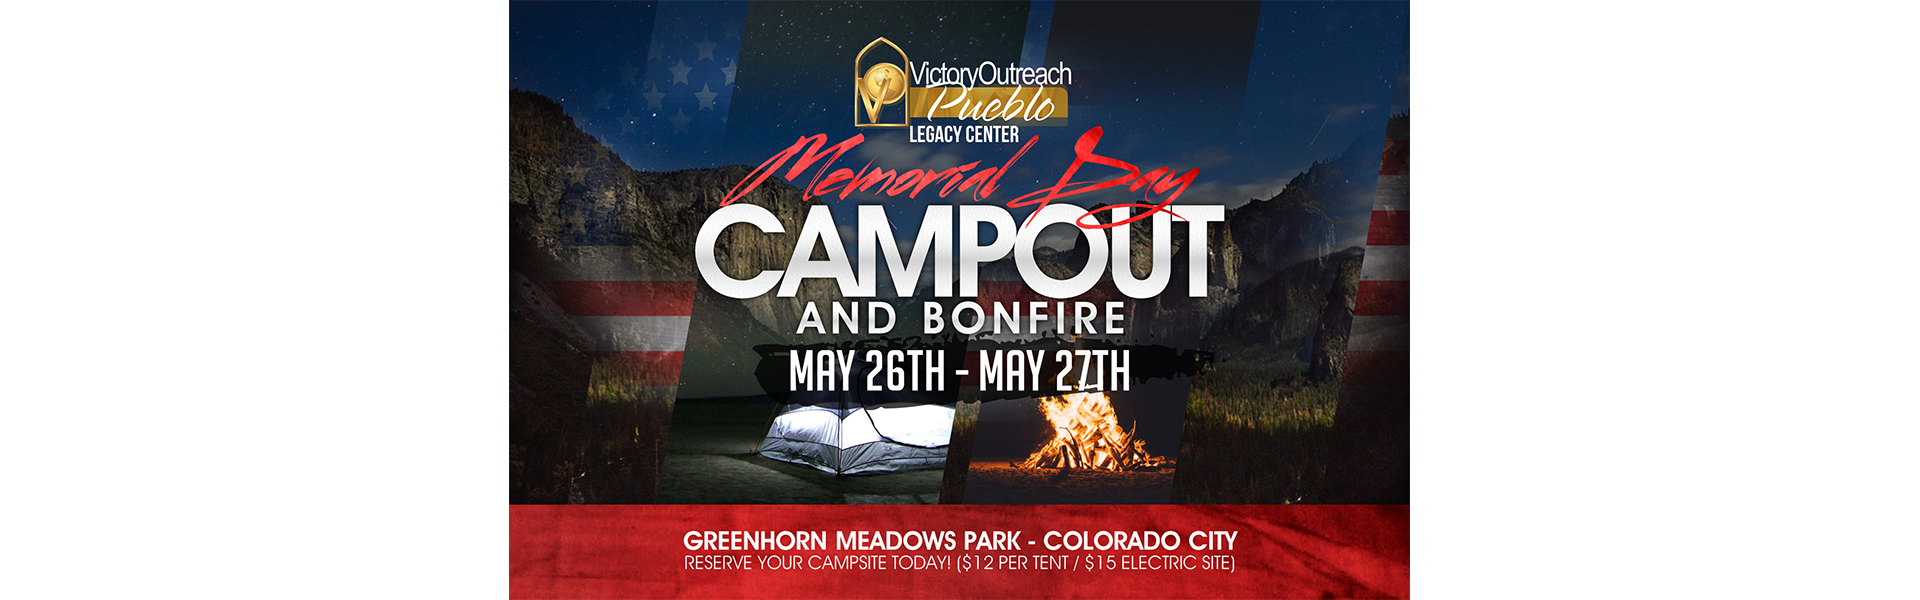 Memorial Day Campout and Bonfire – May 26-27